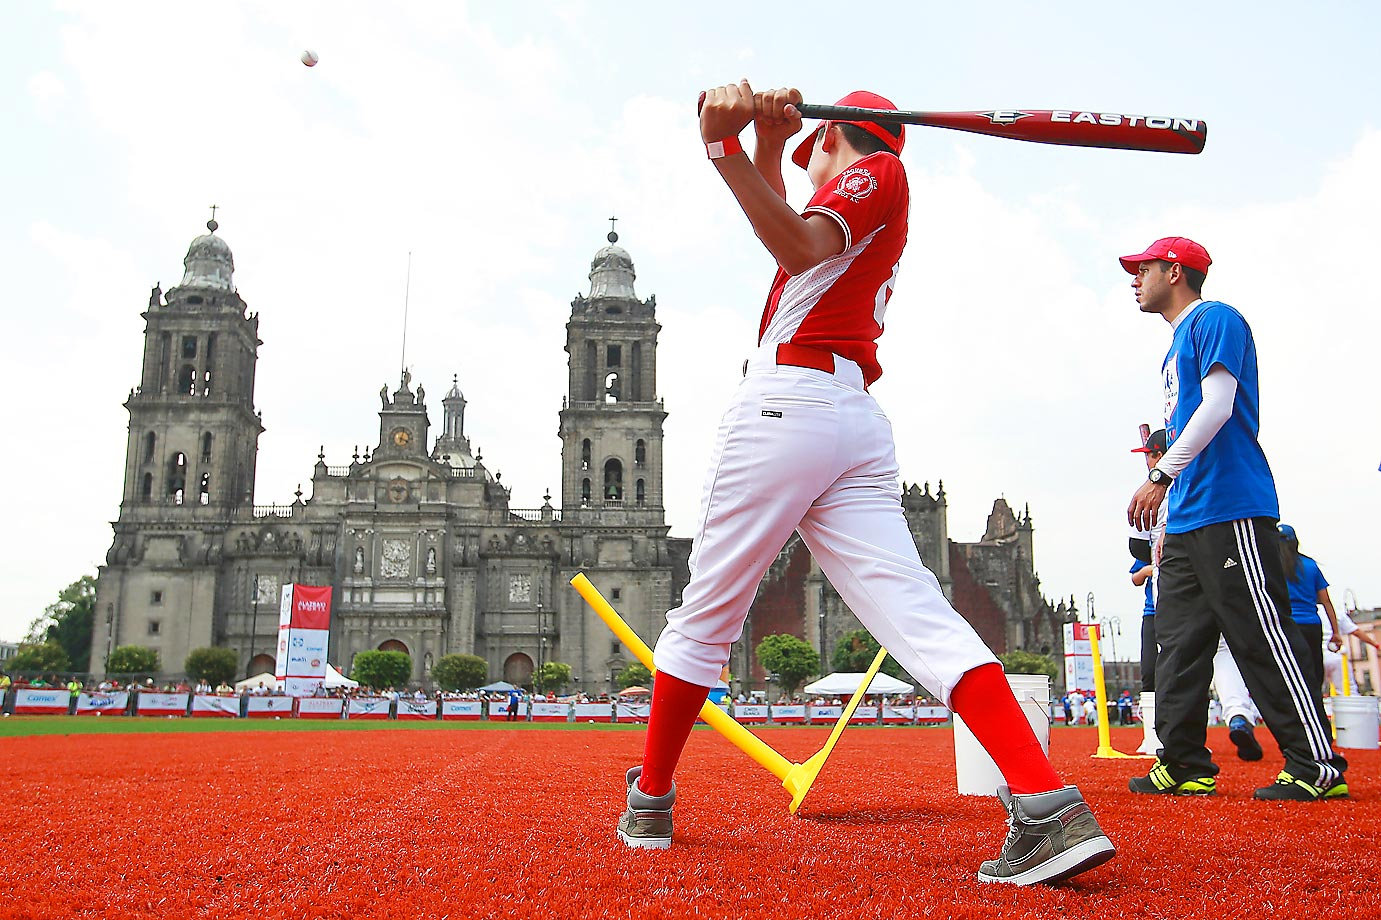 A kid bats a baseball during the Home Run Derby as part of Mexican Baseball League 90th anniversary celebration.